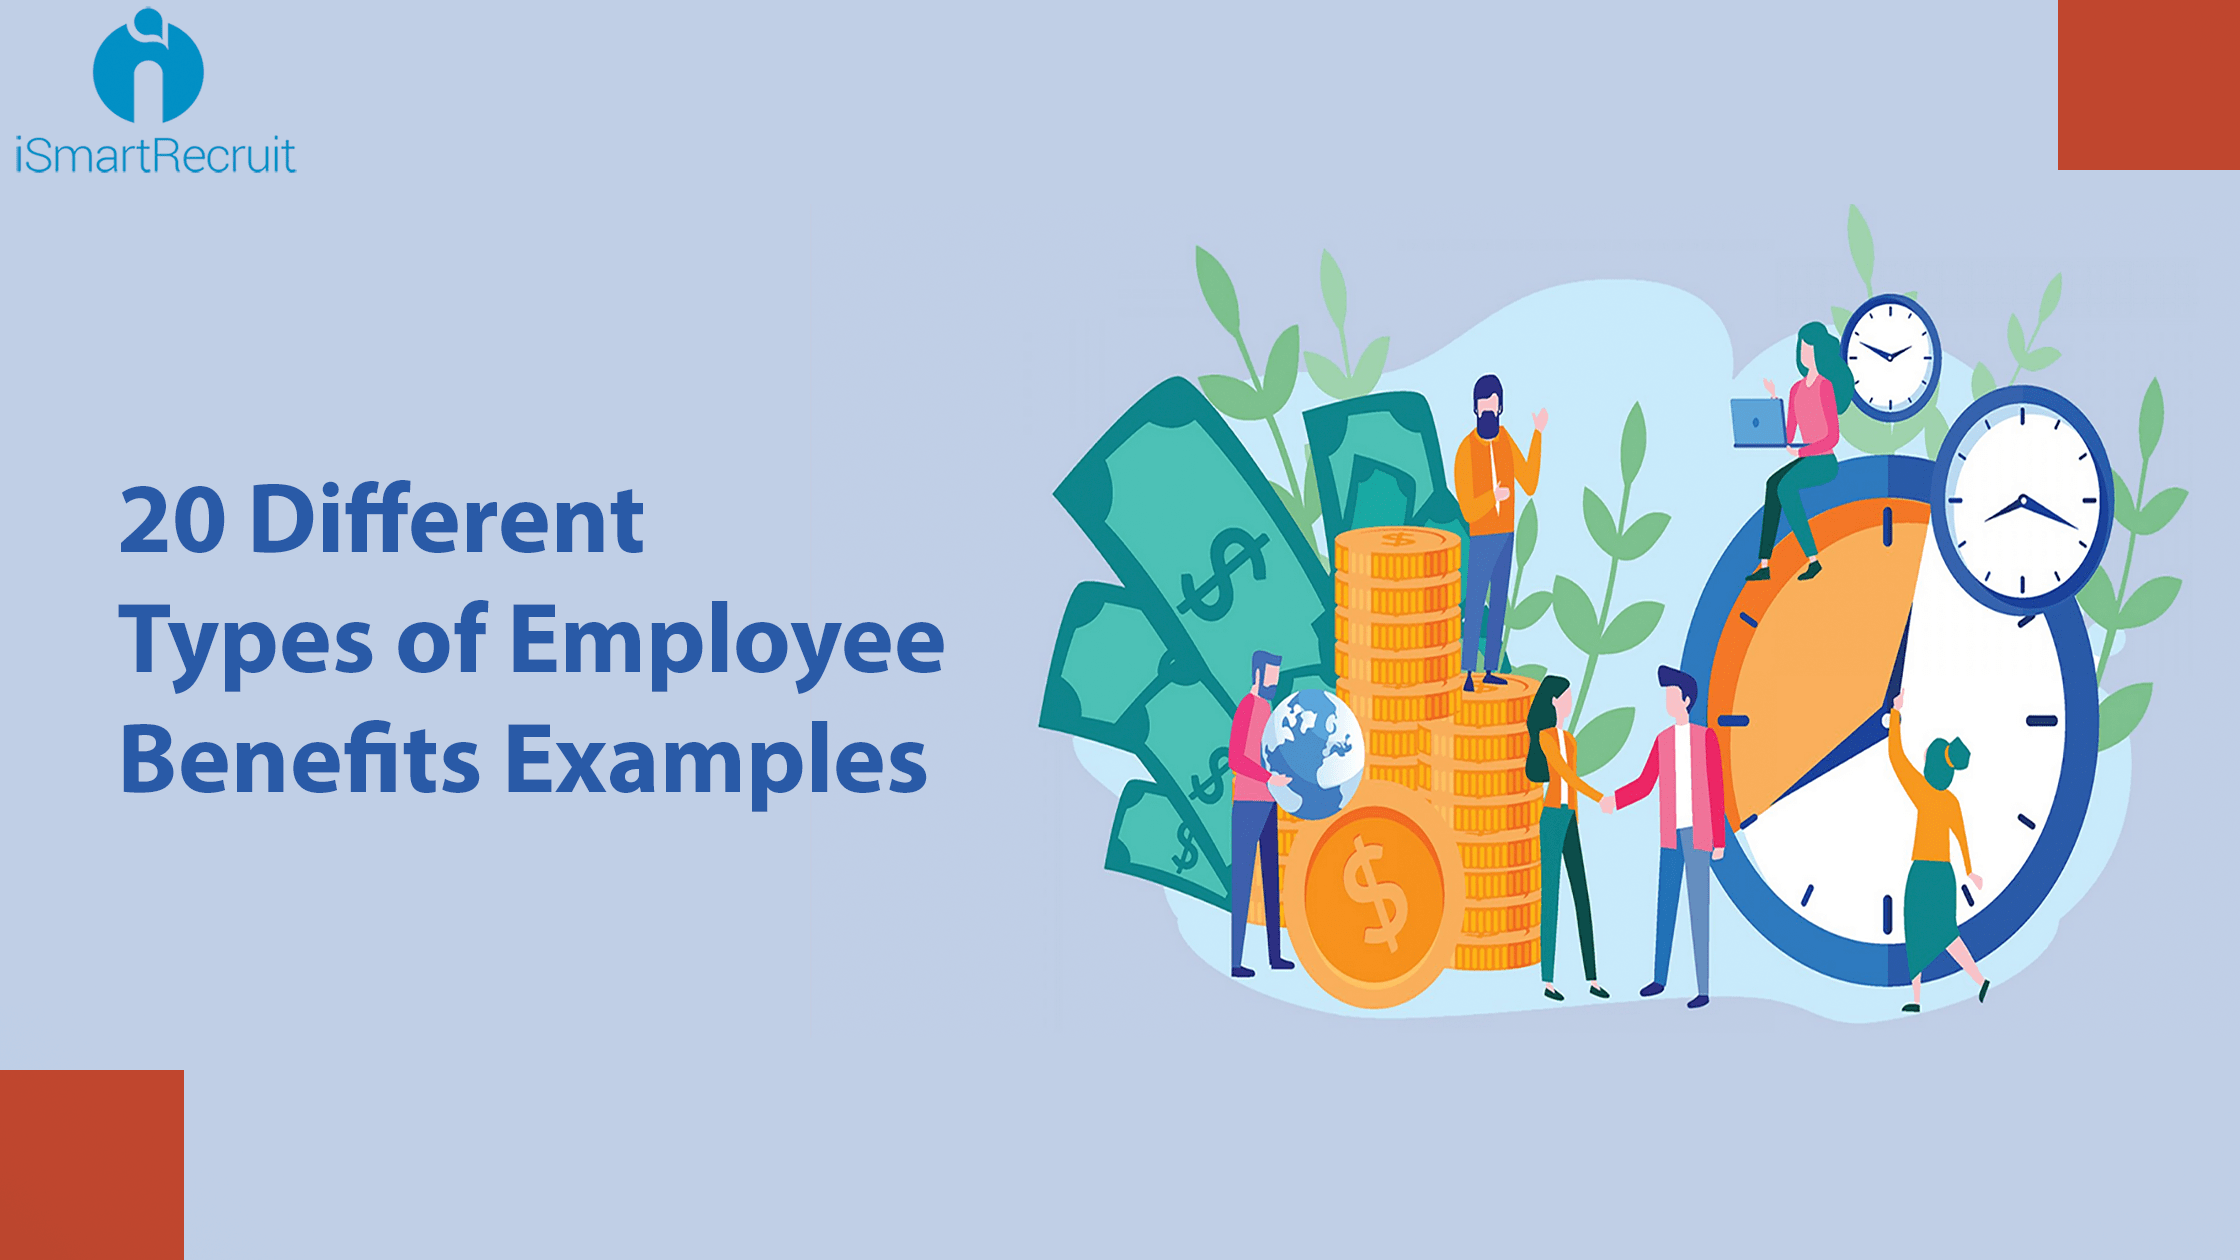 20 Different Types of Employee Benefits Examples